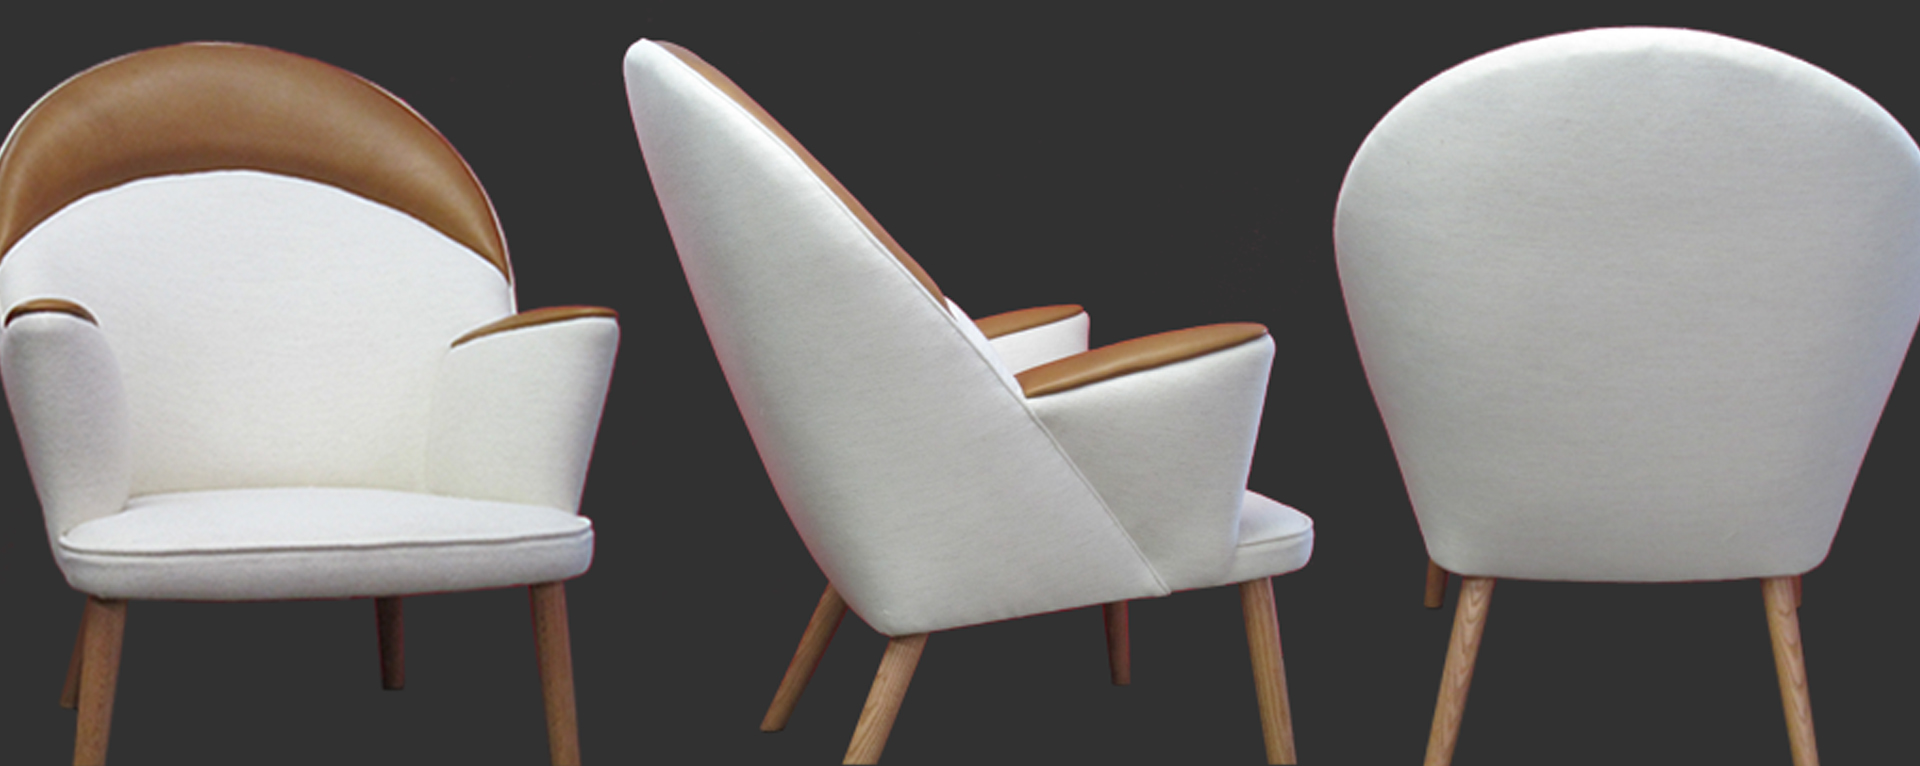 OUR TEAM ARE SKILLED FURNITURE UPHOLSTERERS AND FABRICATORS